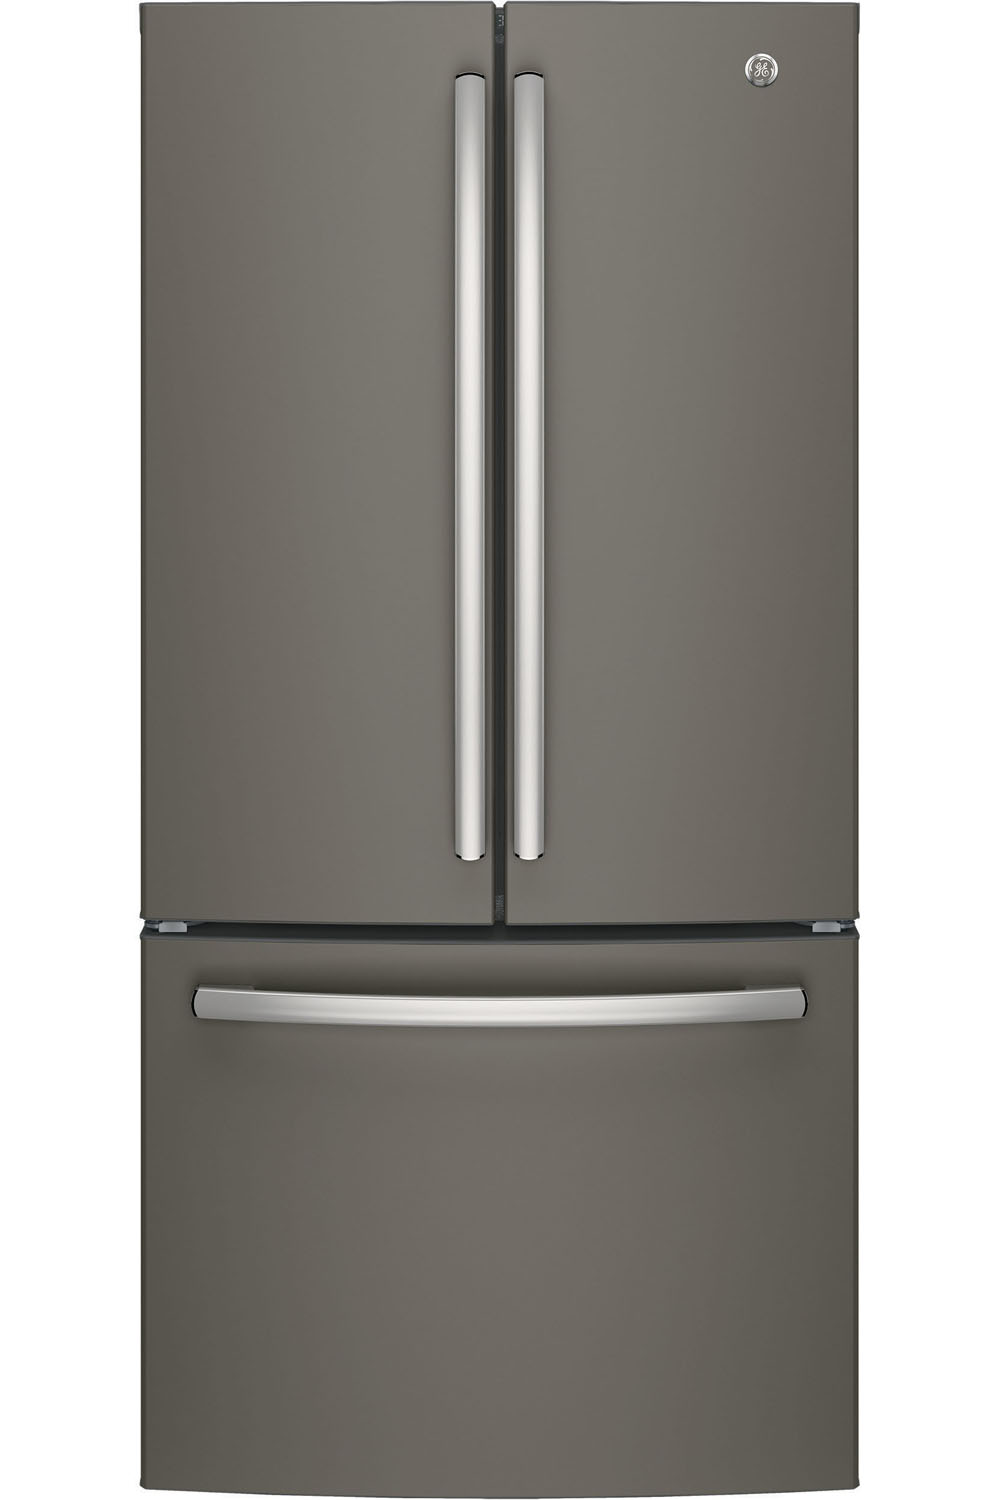 GE Slate French Door Refrigerator